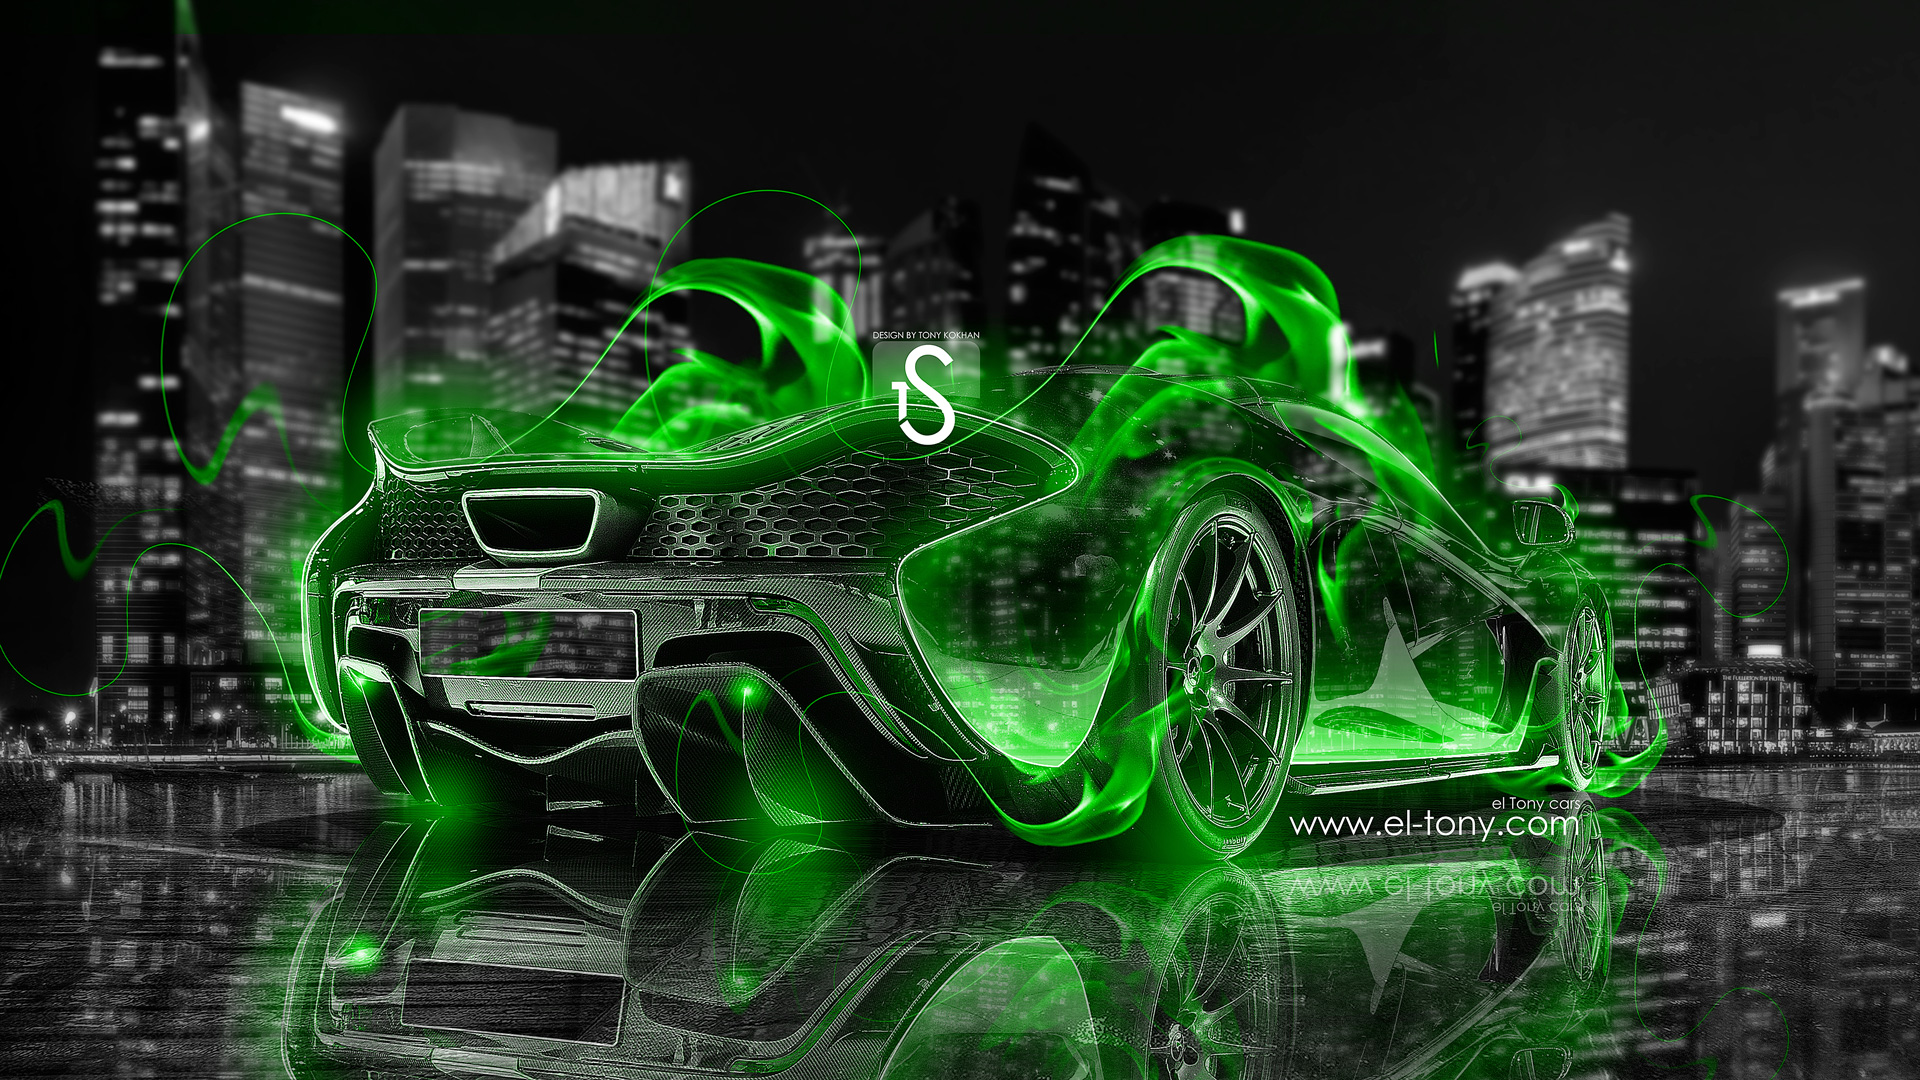 ... McLaren P1 Green Fire City Car 2013 Crystal  ... Great Ideas